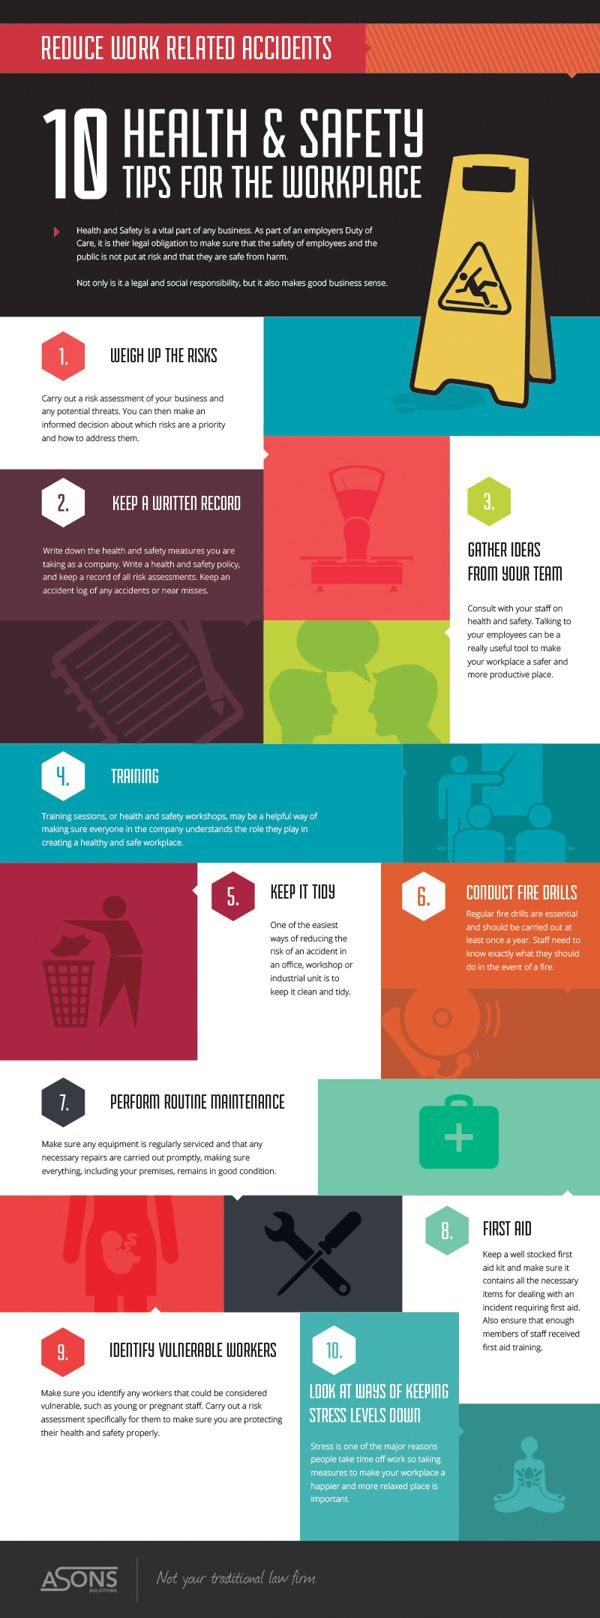 Great tips for safety and health in the workplace.